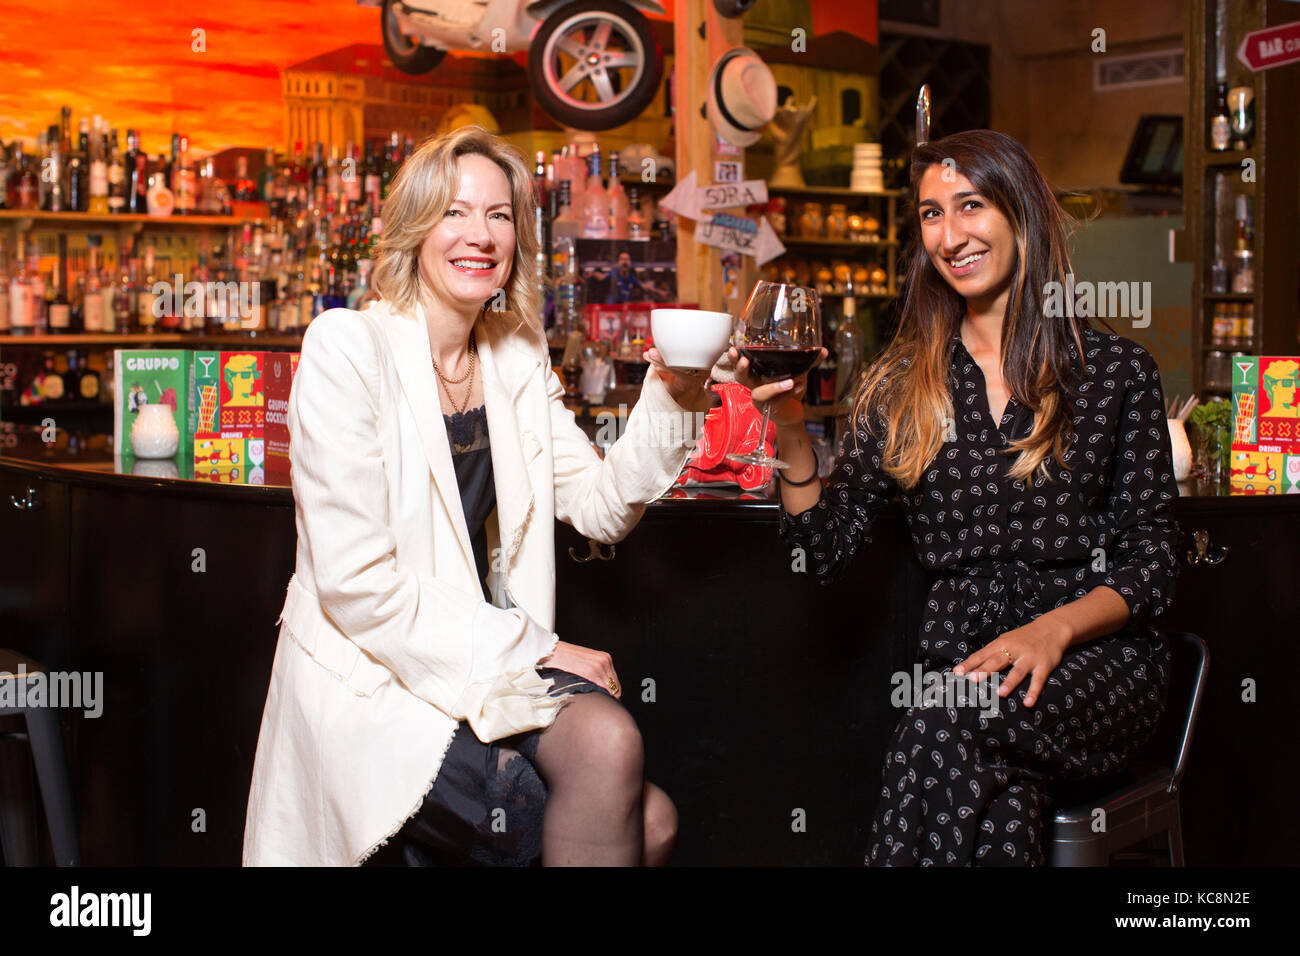 Millennial and a midlifer swapping drinking habits at a local bar in London, UK - Stock Image